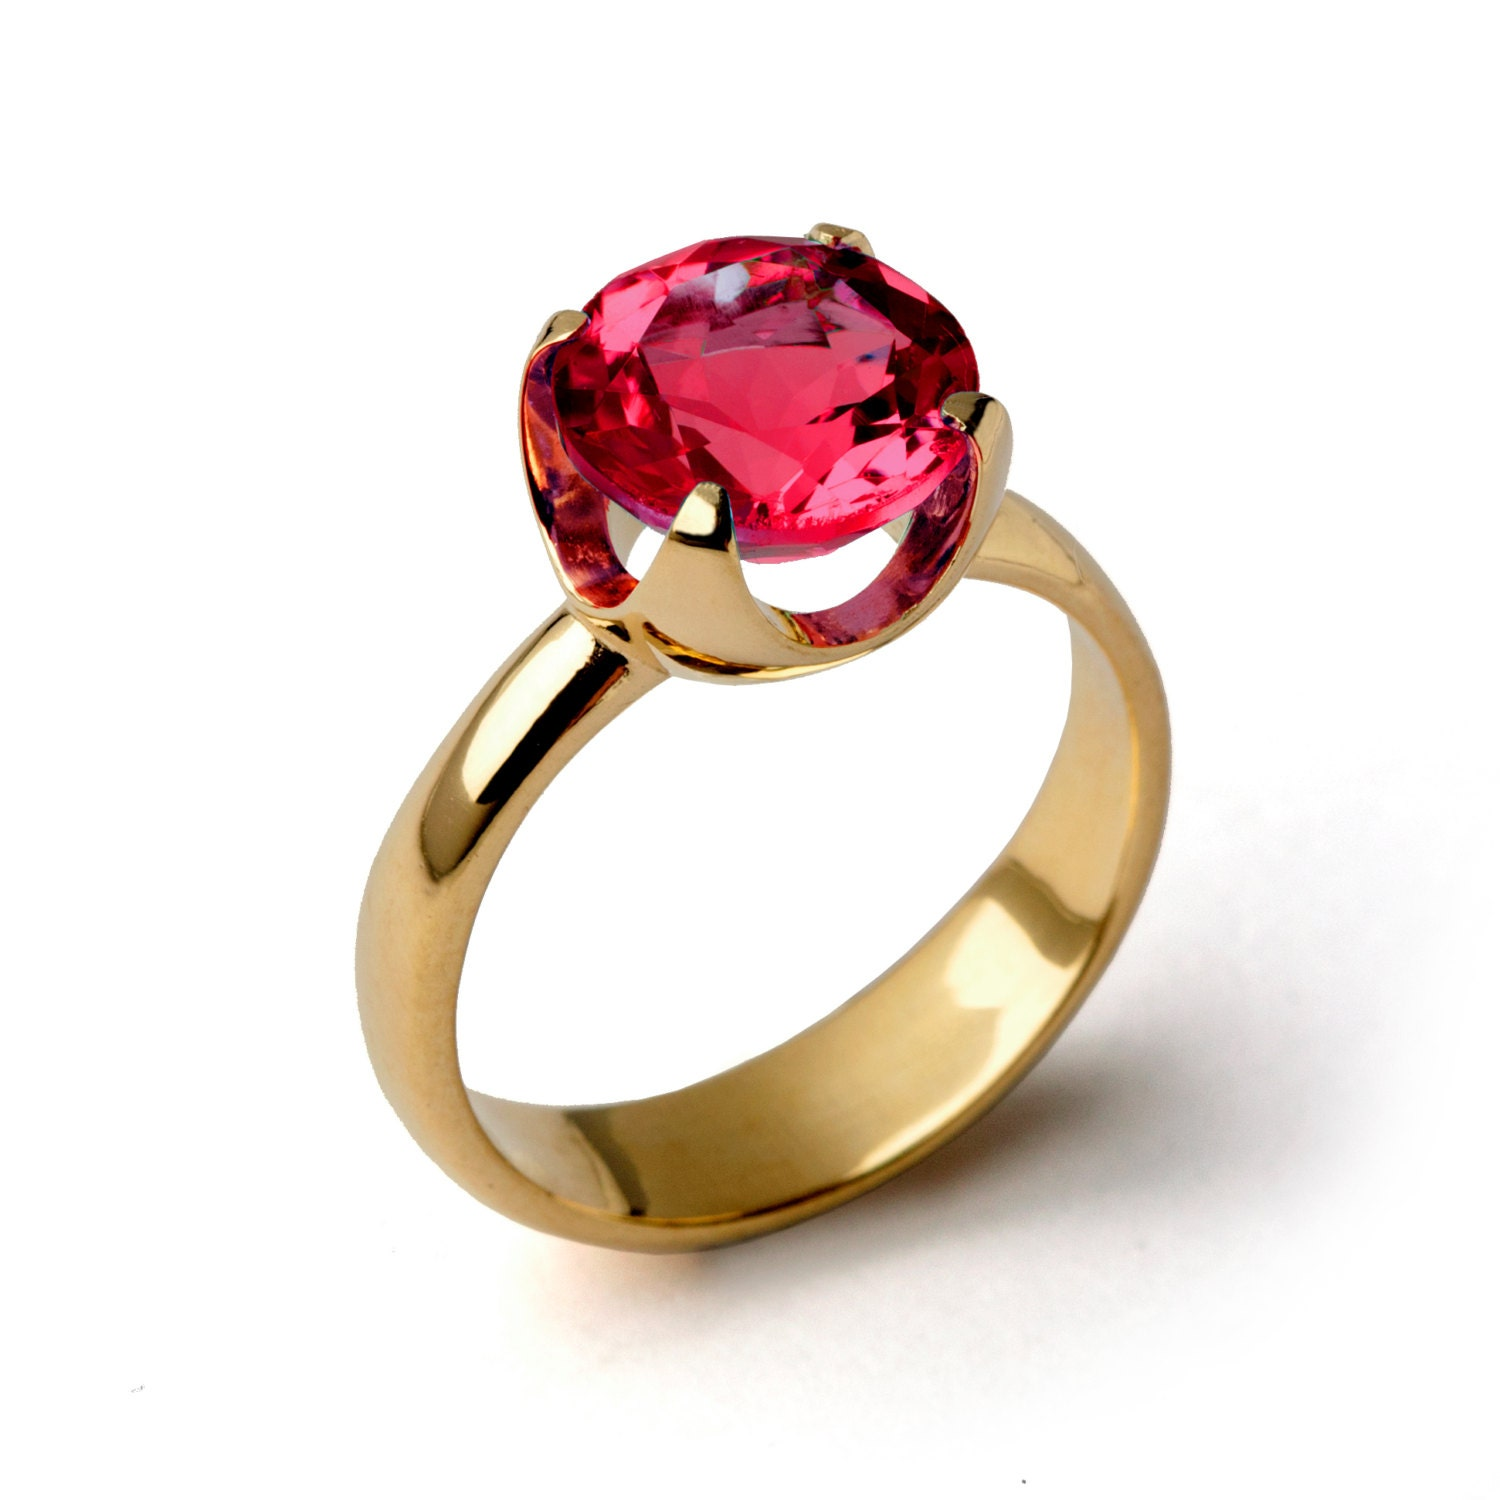 nc browse engagement diamond cocktail rings spray natural gold ring raleigh waterfall vintage in category ruby